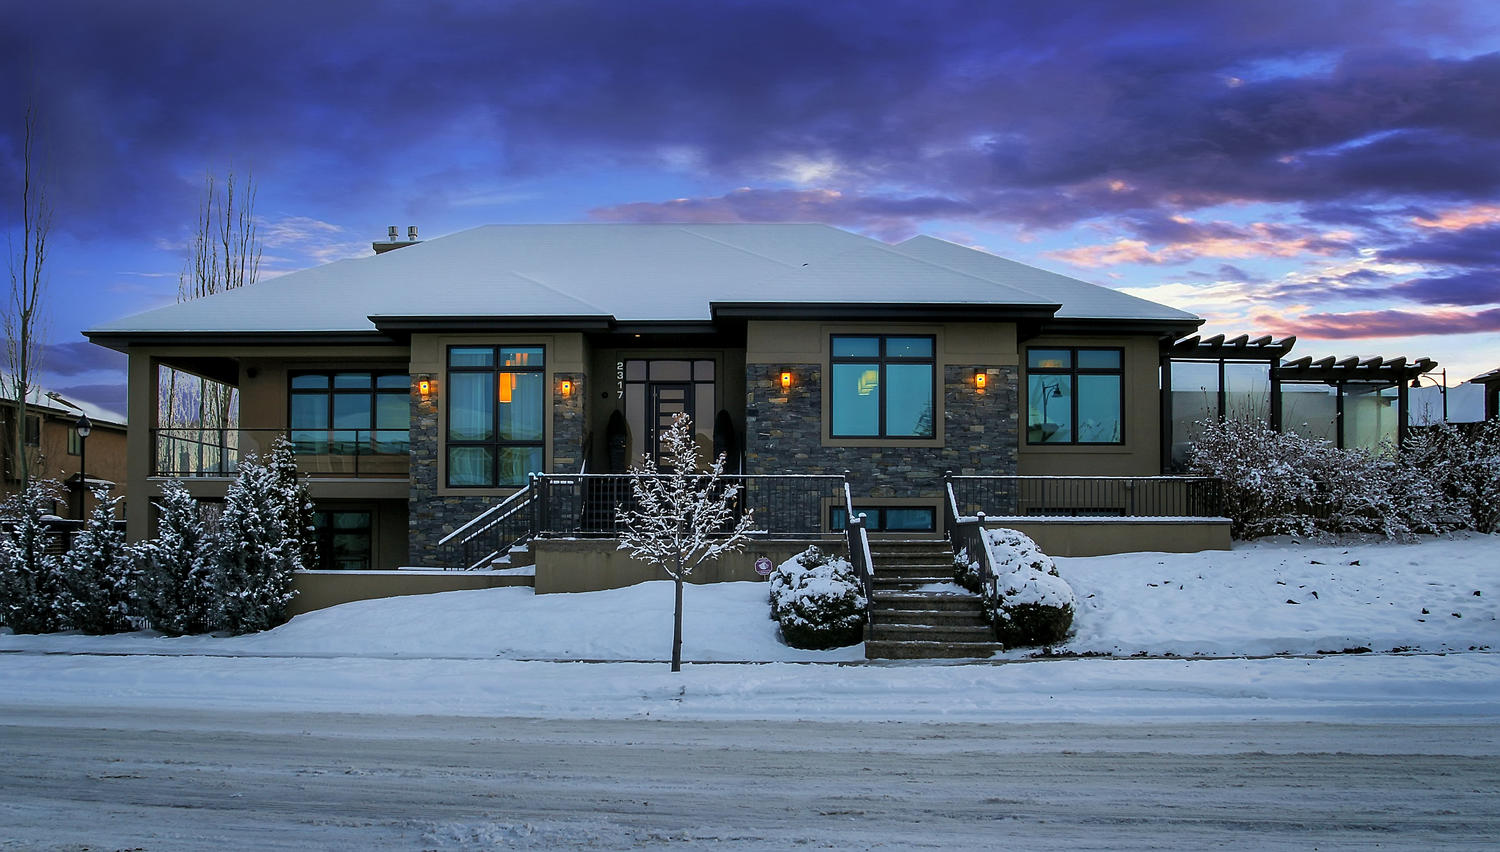 FEATURED LISTING: 2317 Martell LN Edmonton